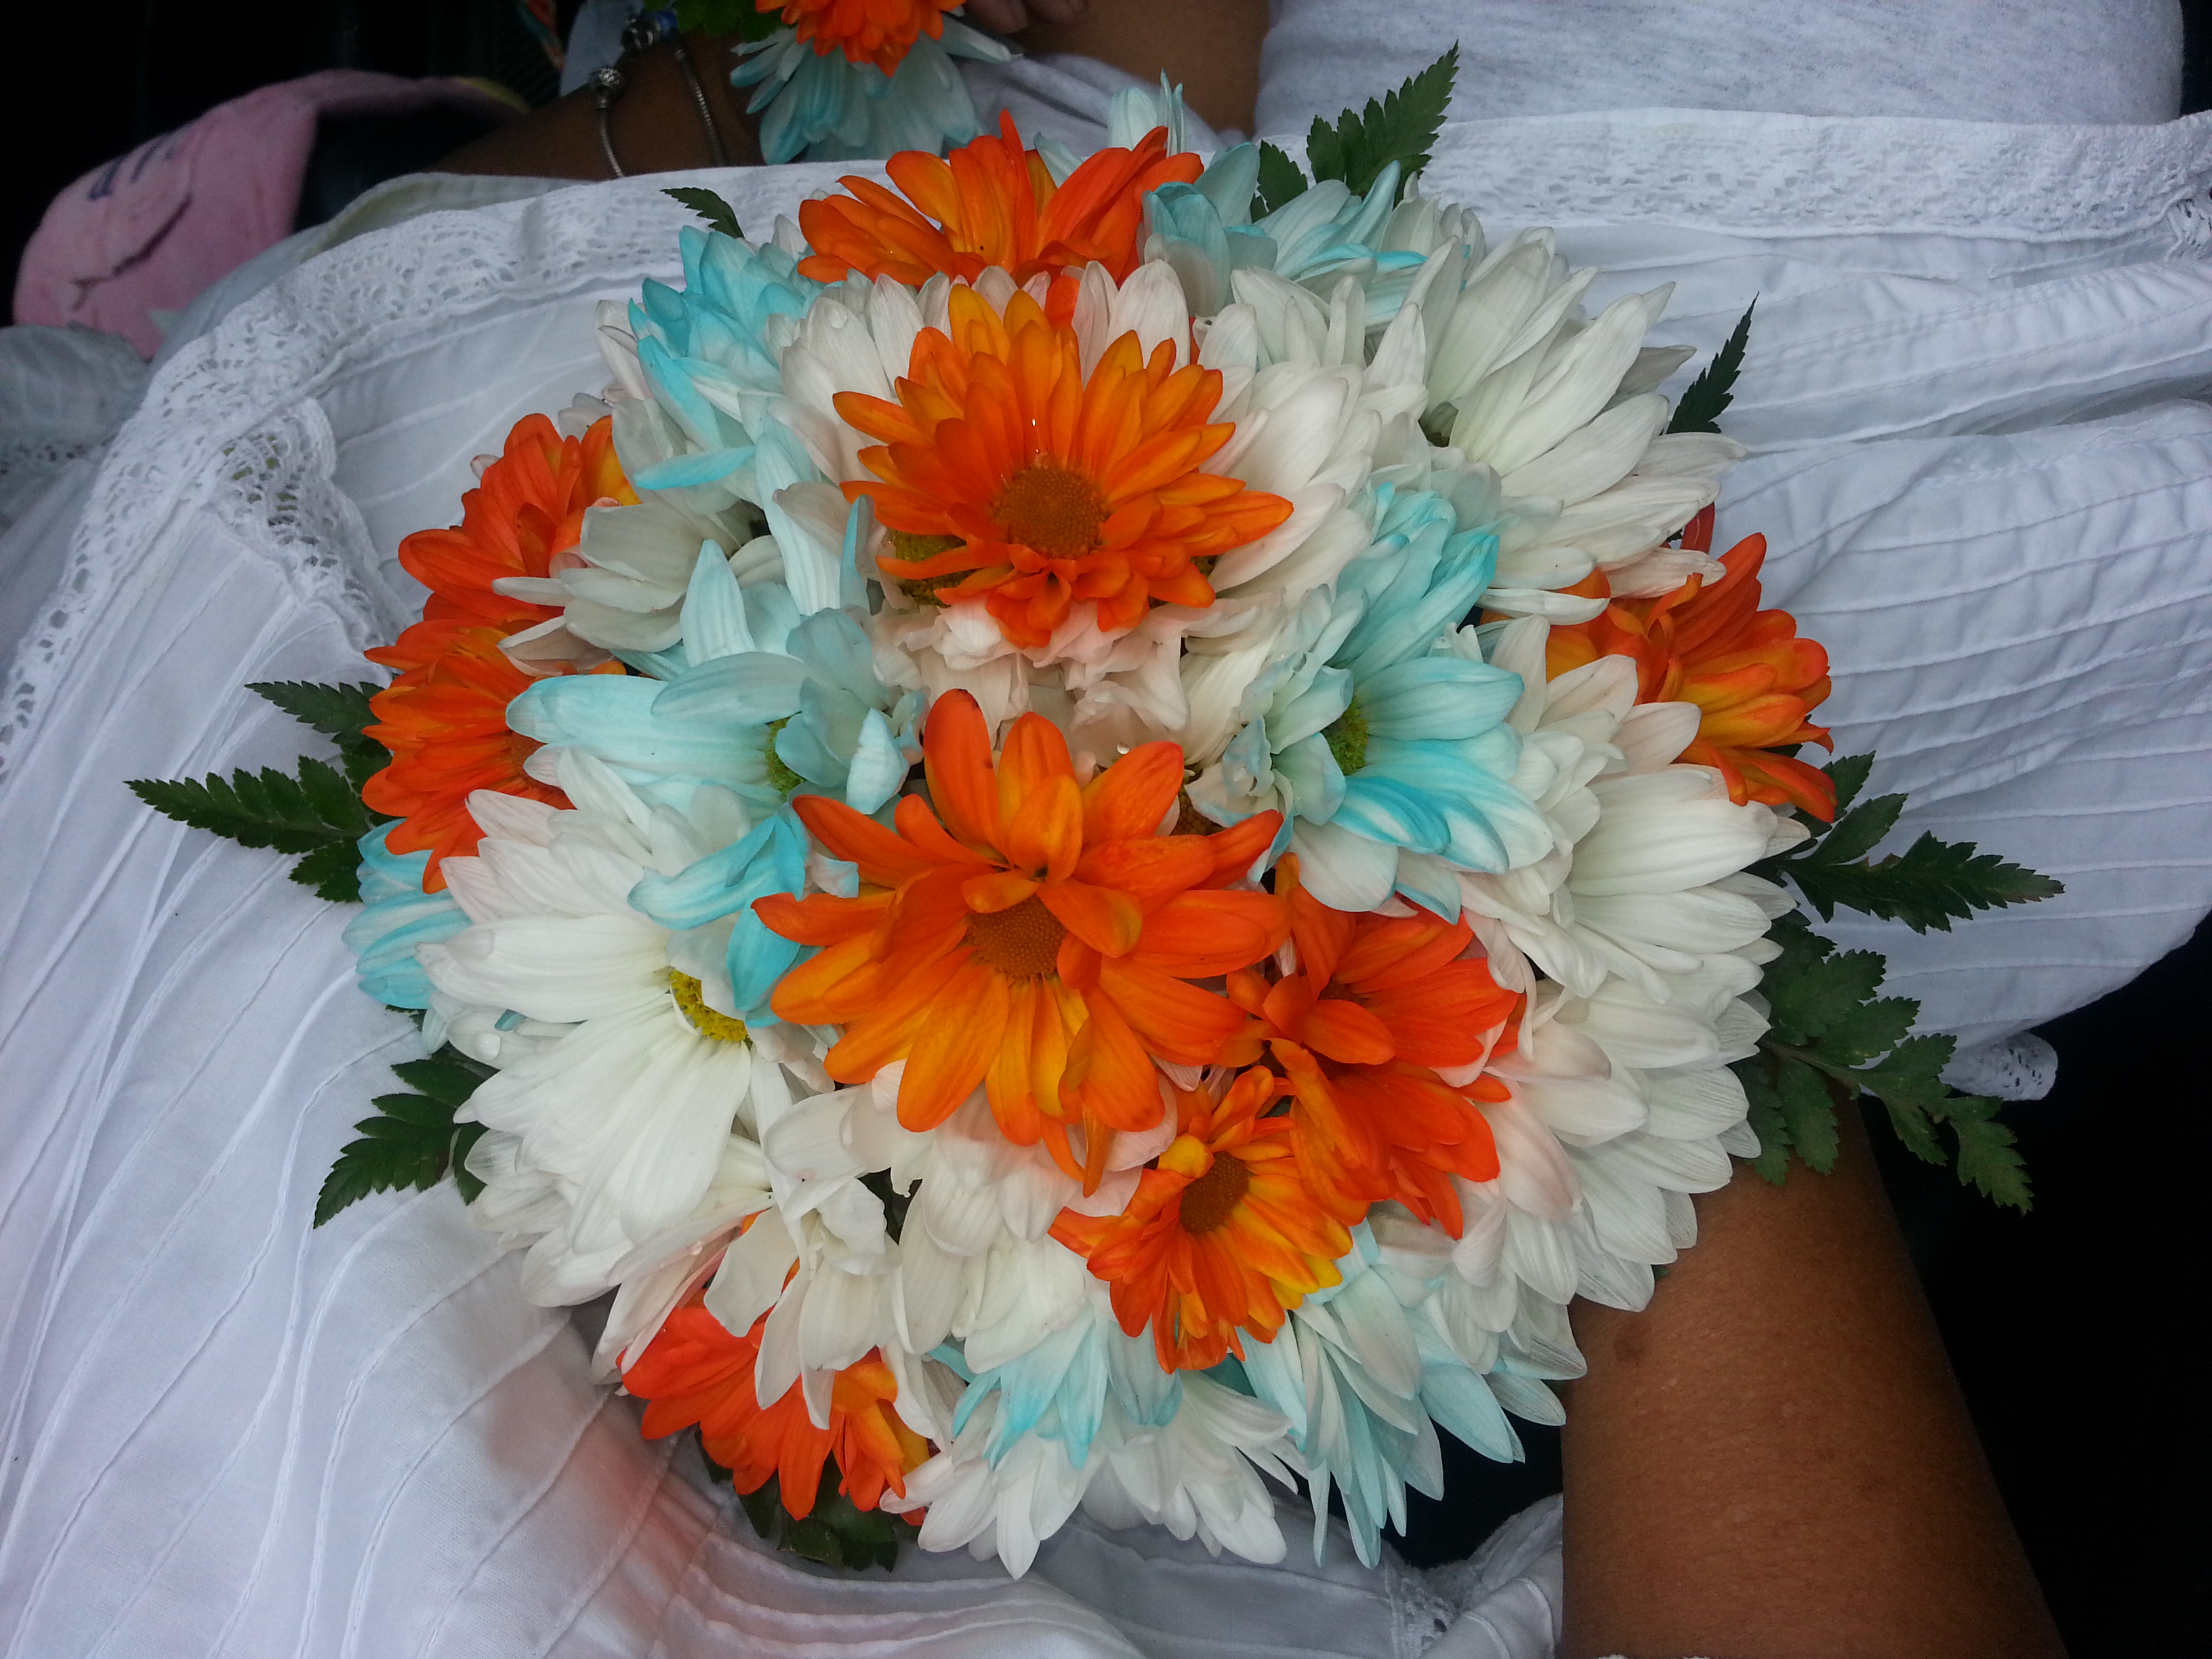 Daises & Chrysanthemum Mix